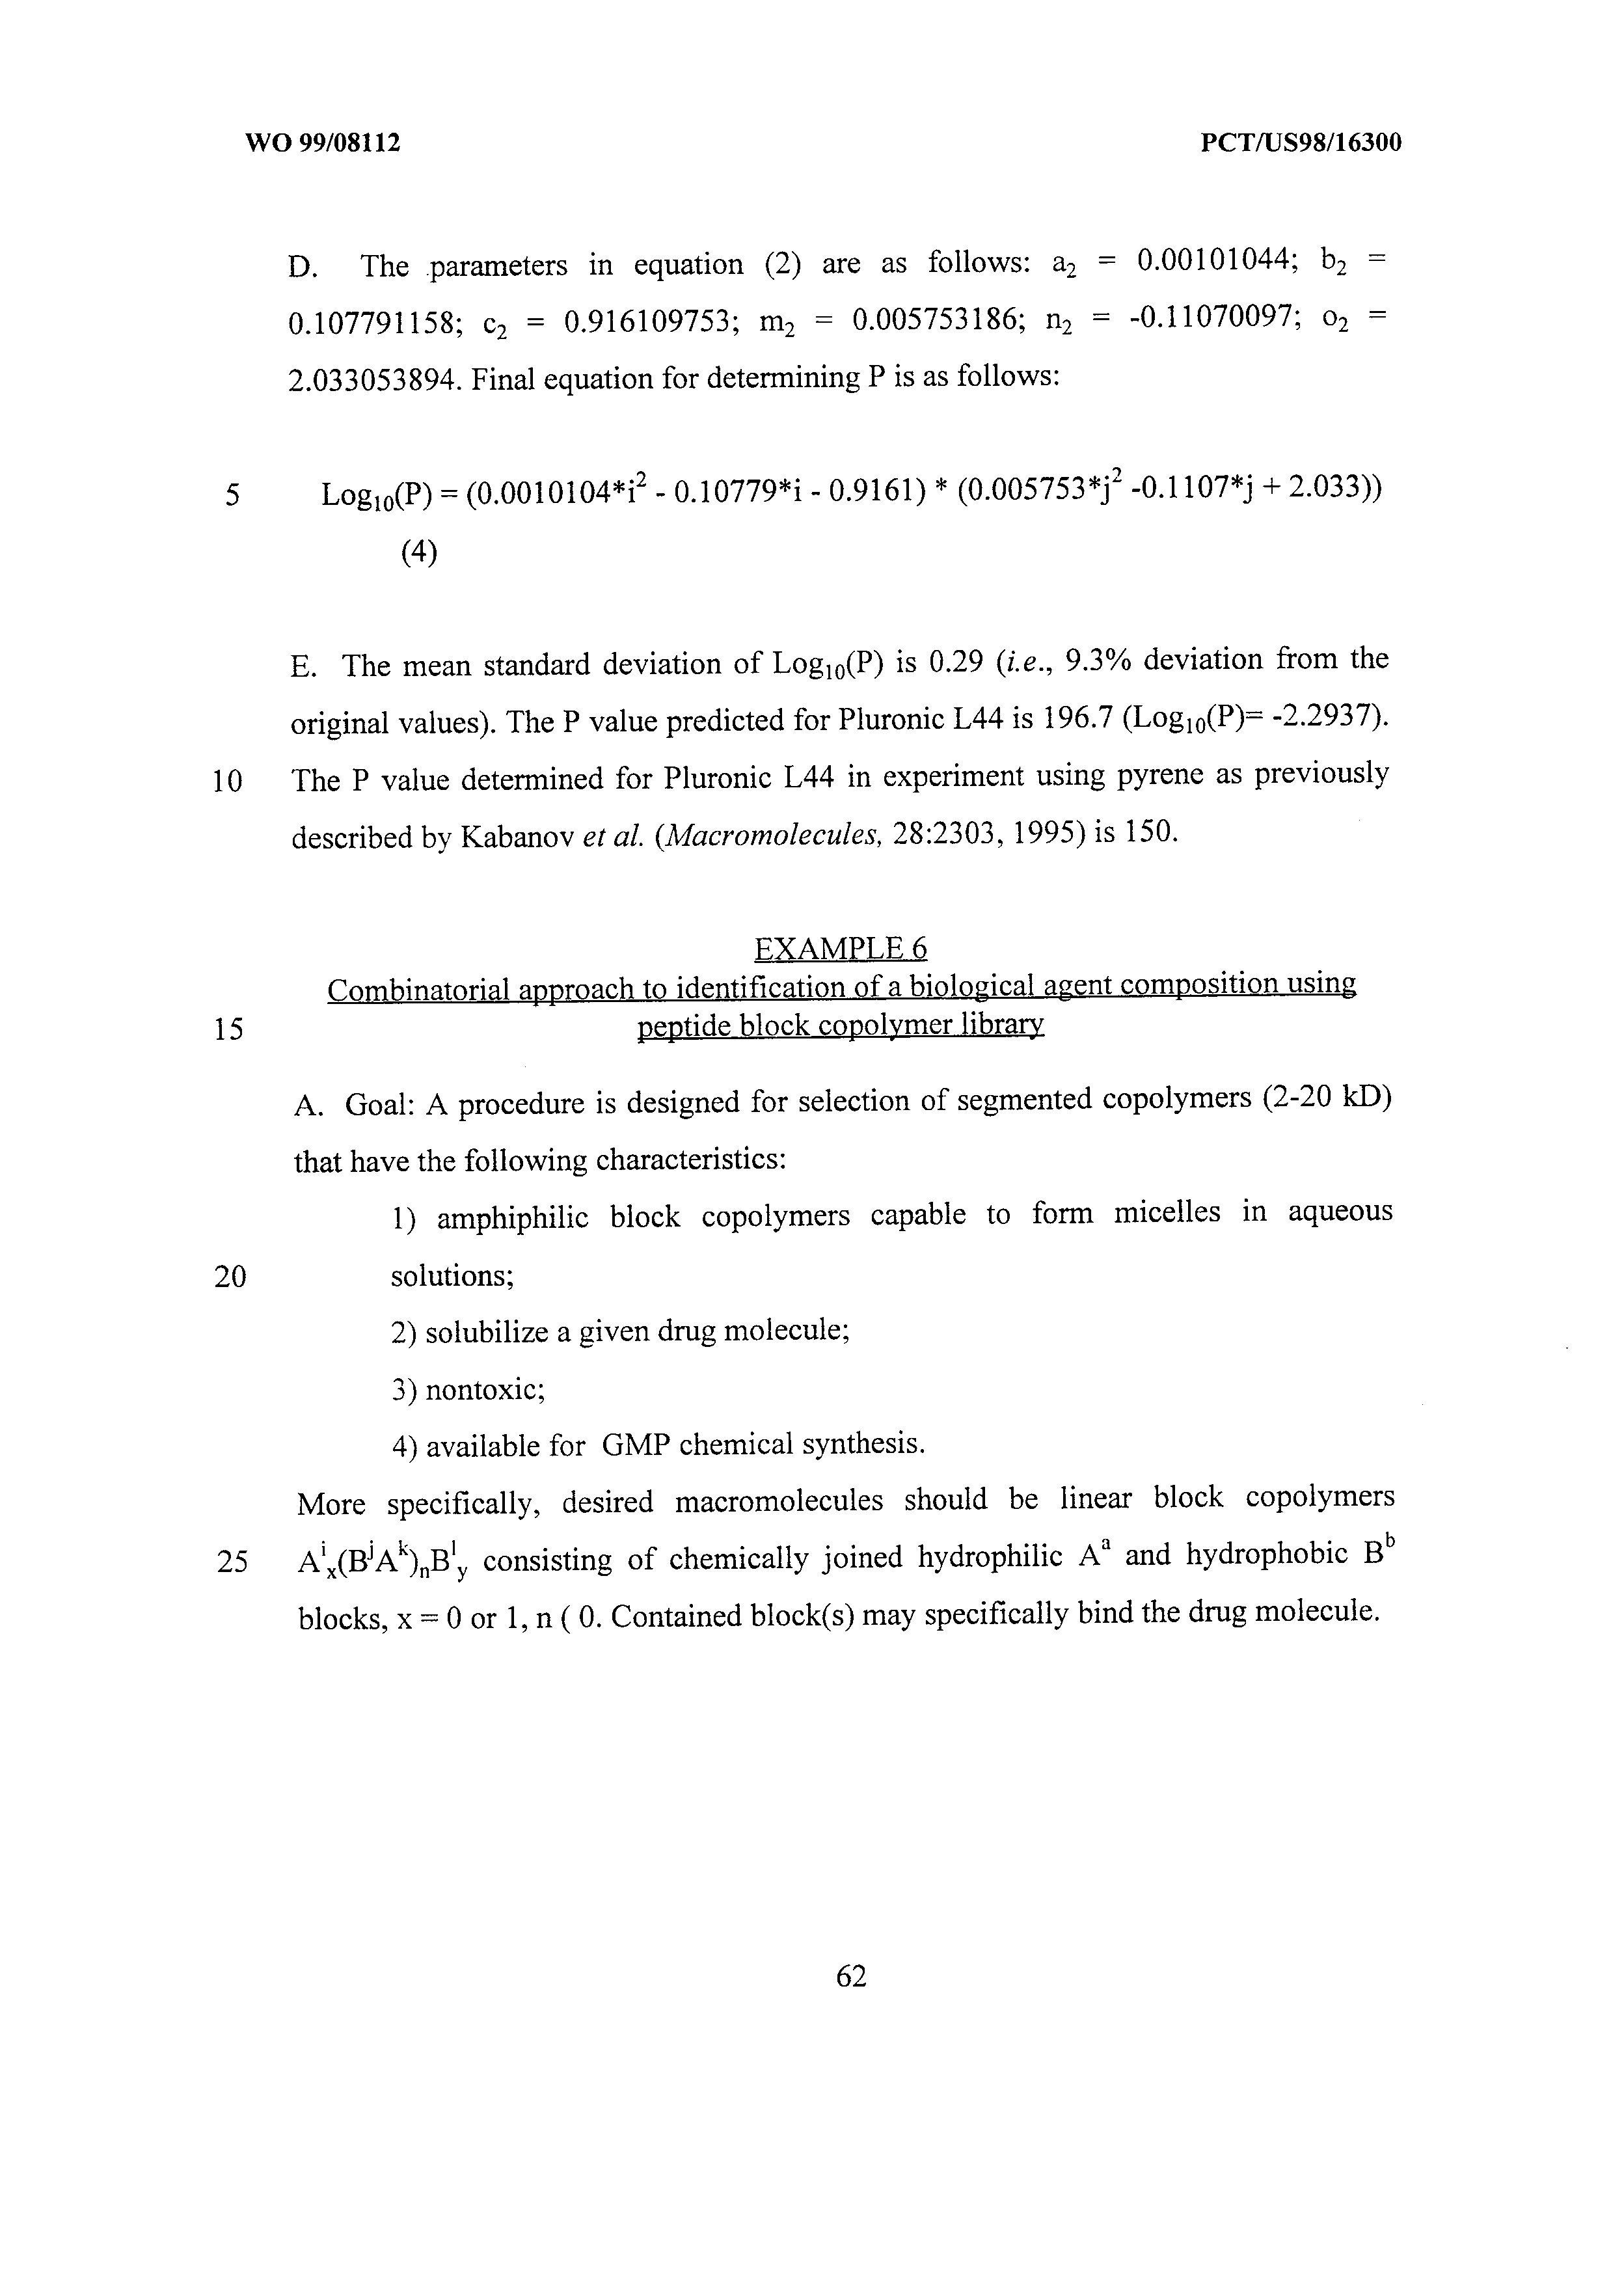 WO 1999/008112 A1 - Methods Of Identifying Biological Agent